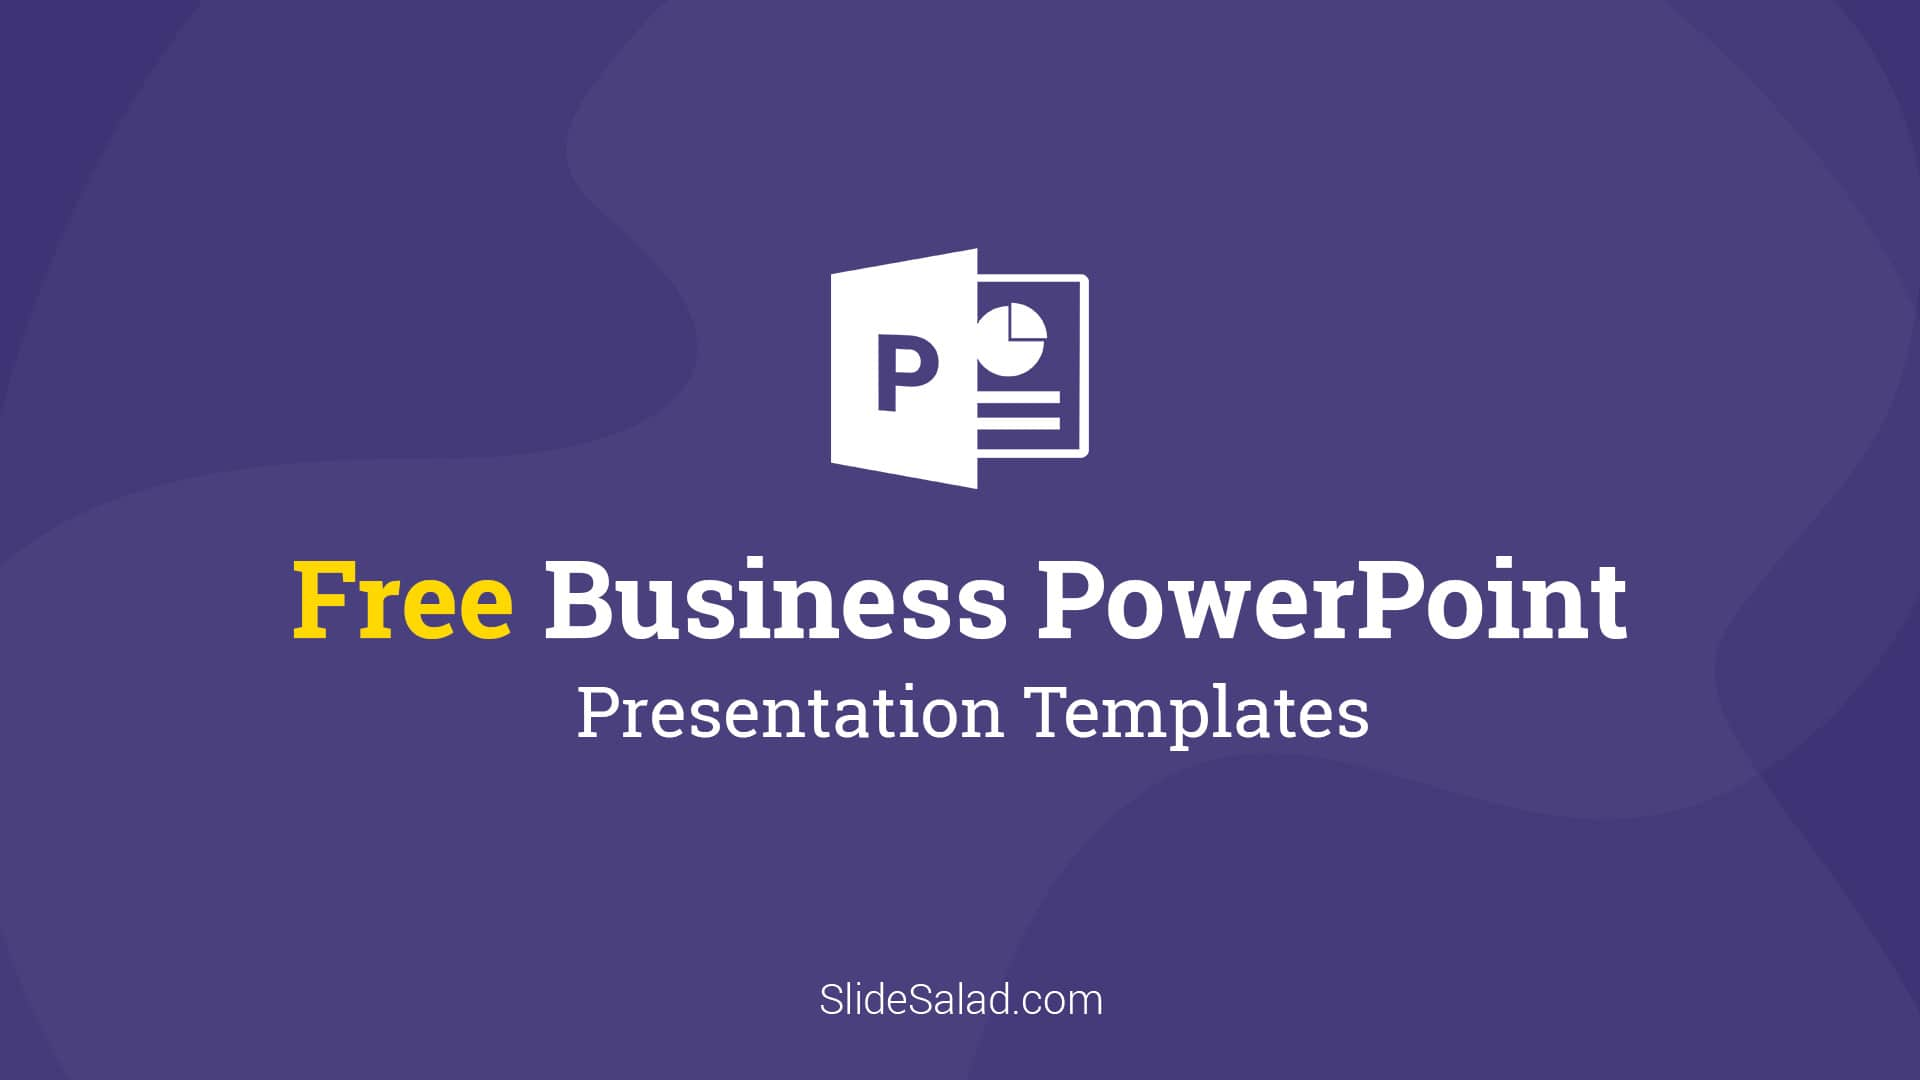 Download Best Free PowerPoint Templates for Presentations